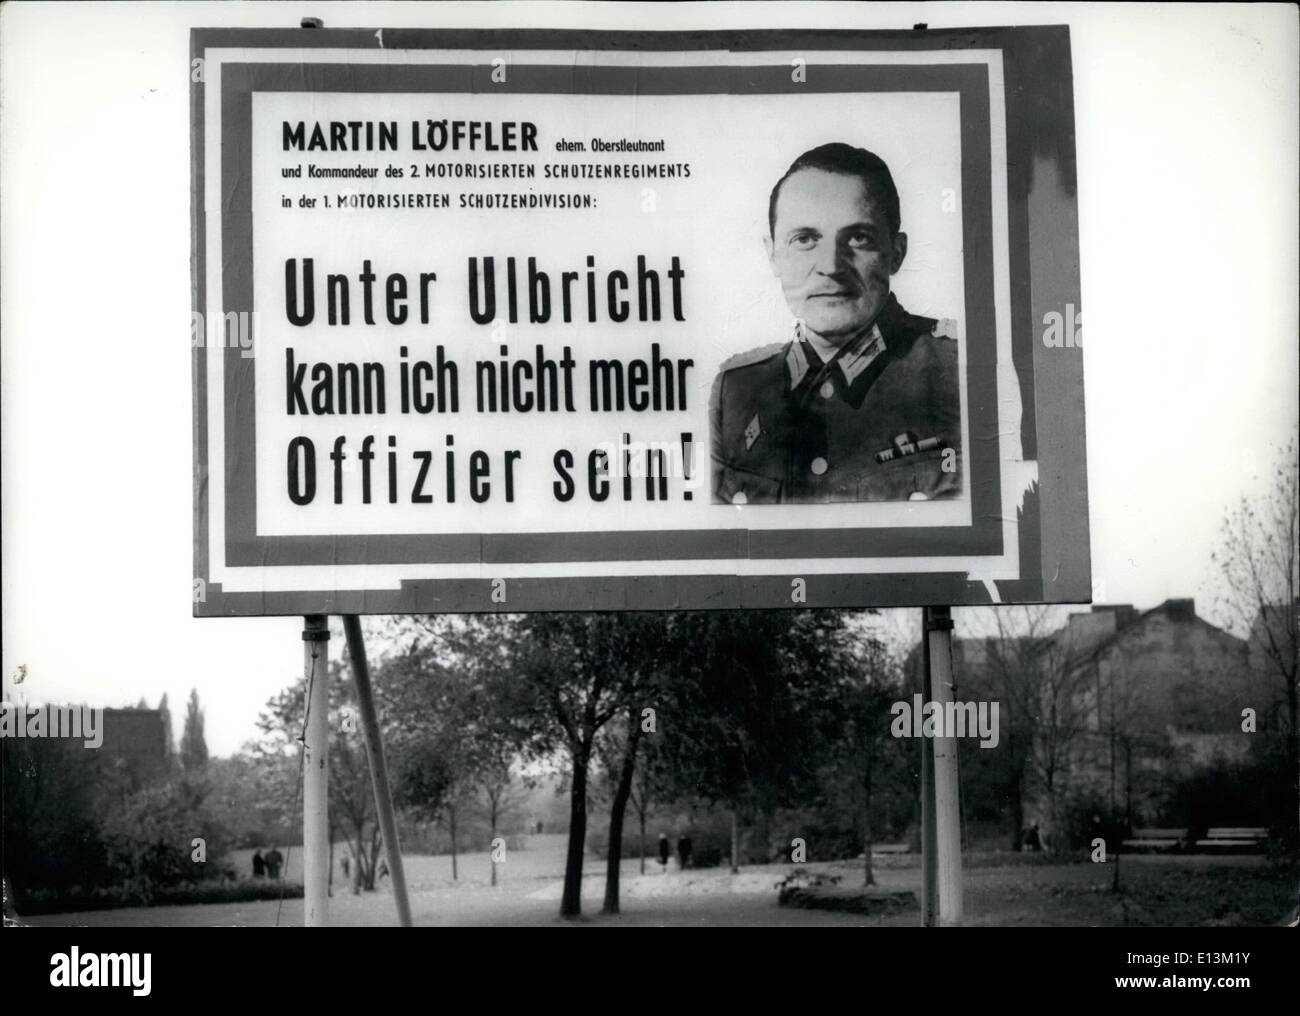 Mar. 02, 2012 - Well visible for the Eastberlin people police and Eastgerman Volksarme and all Eastberlin people, the Westberlin police put up this placard all along the wall and the sector border. The placards shows the escaped Eastgerman Volksarmee officer, Lt. Col. Martin Loffler and the words: I can not more be officer under command of Ulbricht. Keystone Berlin, 30.10.62 - Stock Image